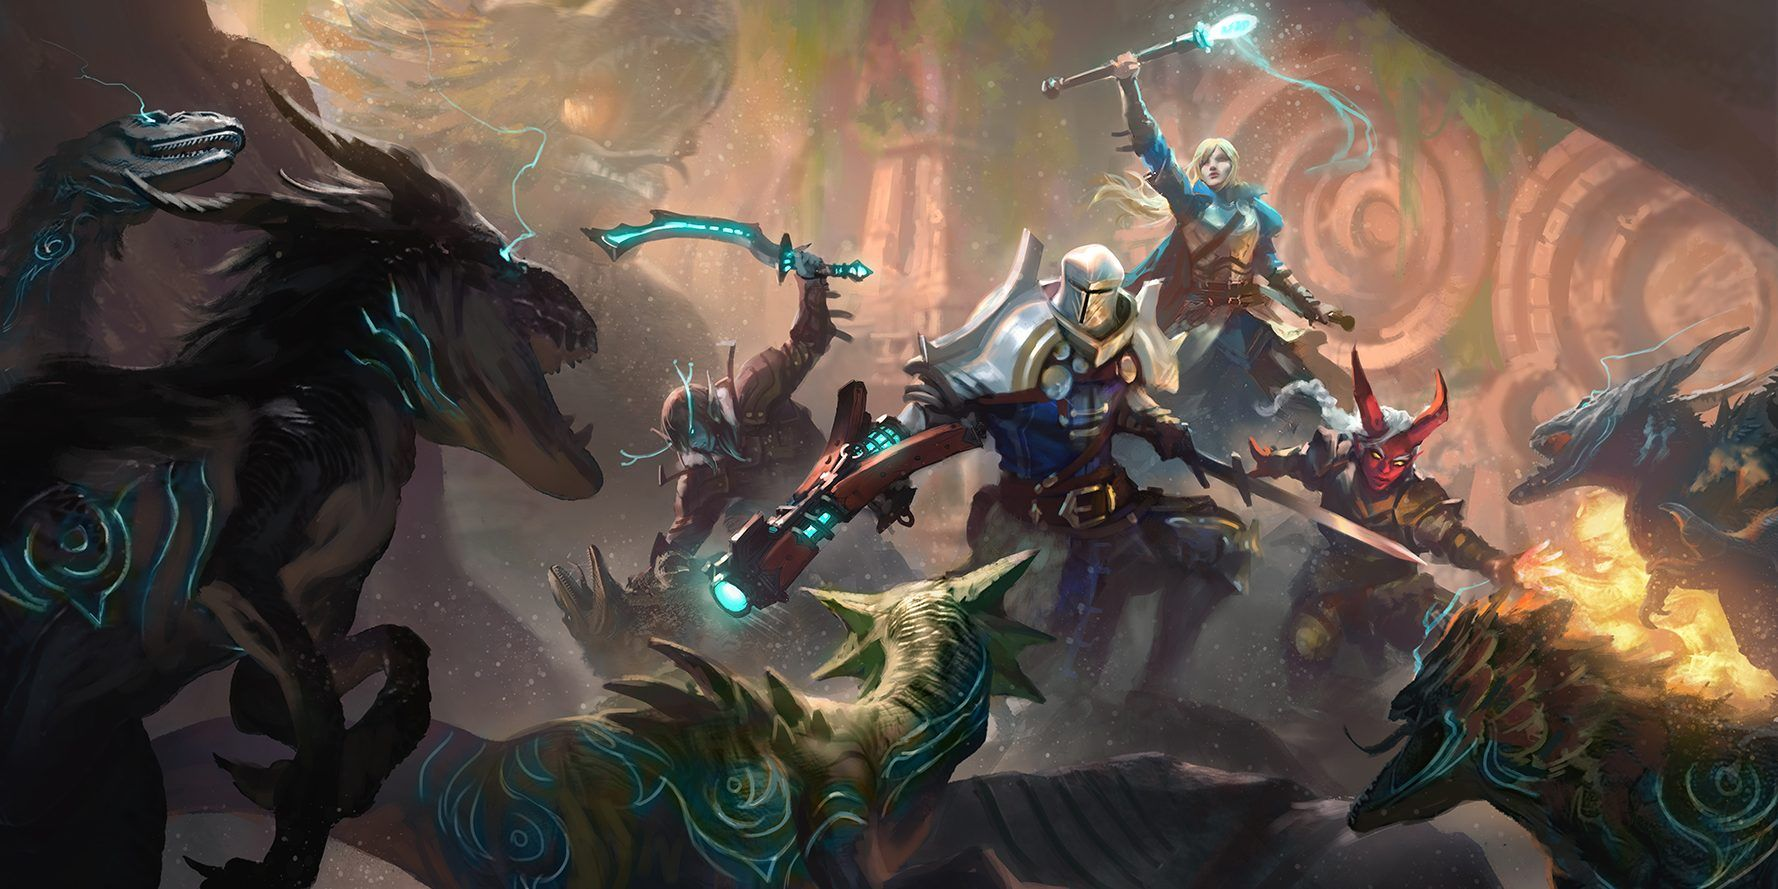 E3 2019 Preview: Want To Play D&D But Hate People? Project Witchstone Is For You